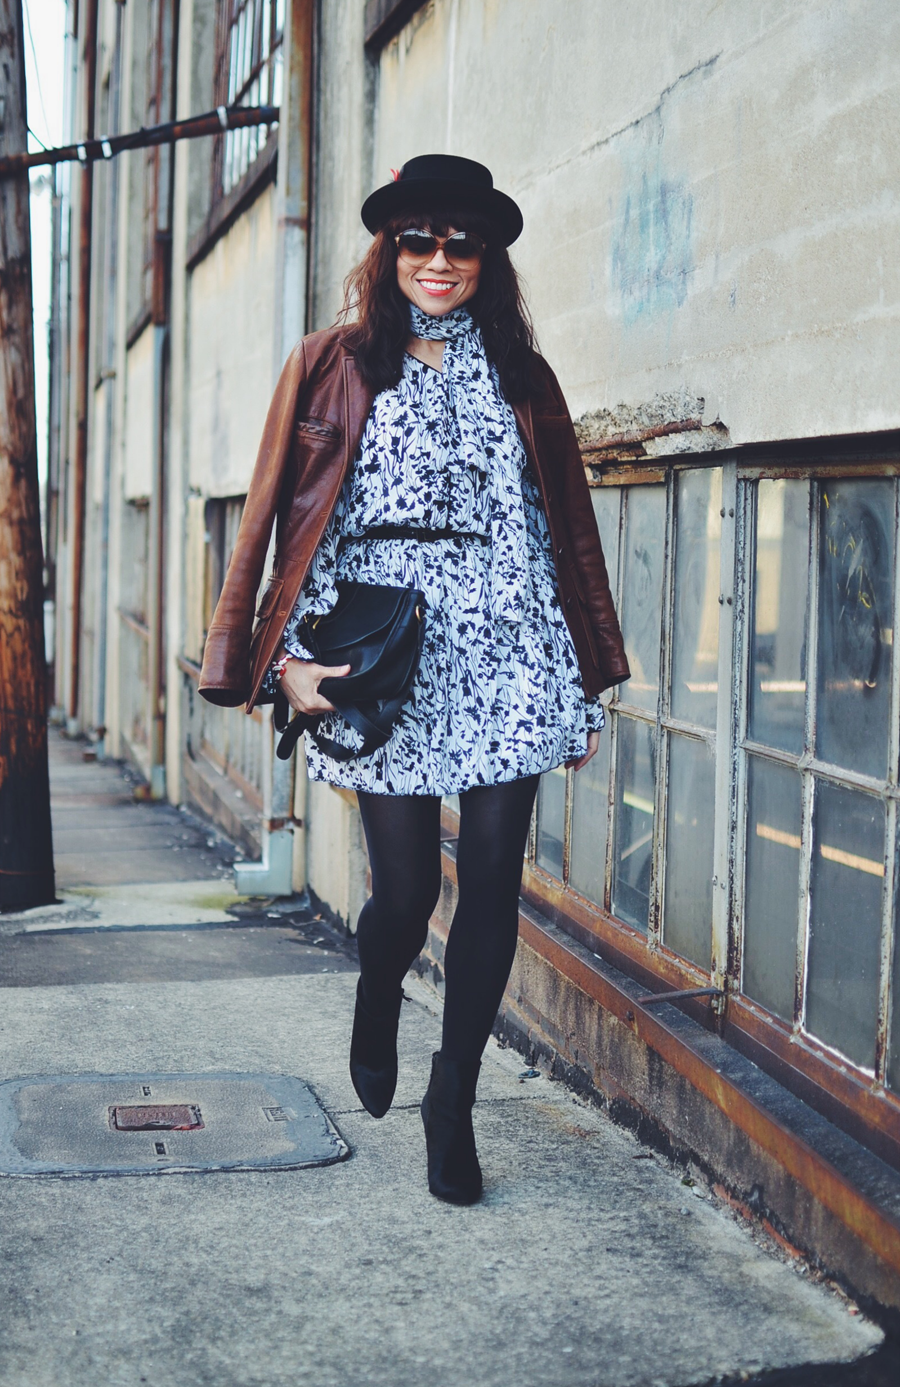 How to wear a floral dress in winter time